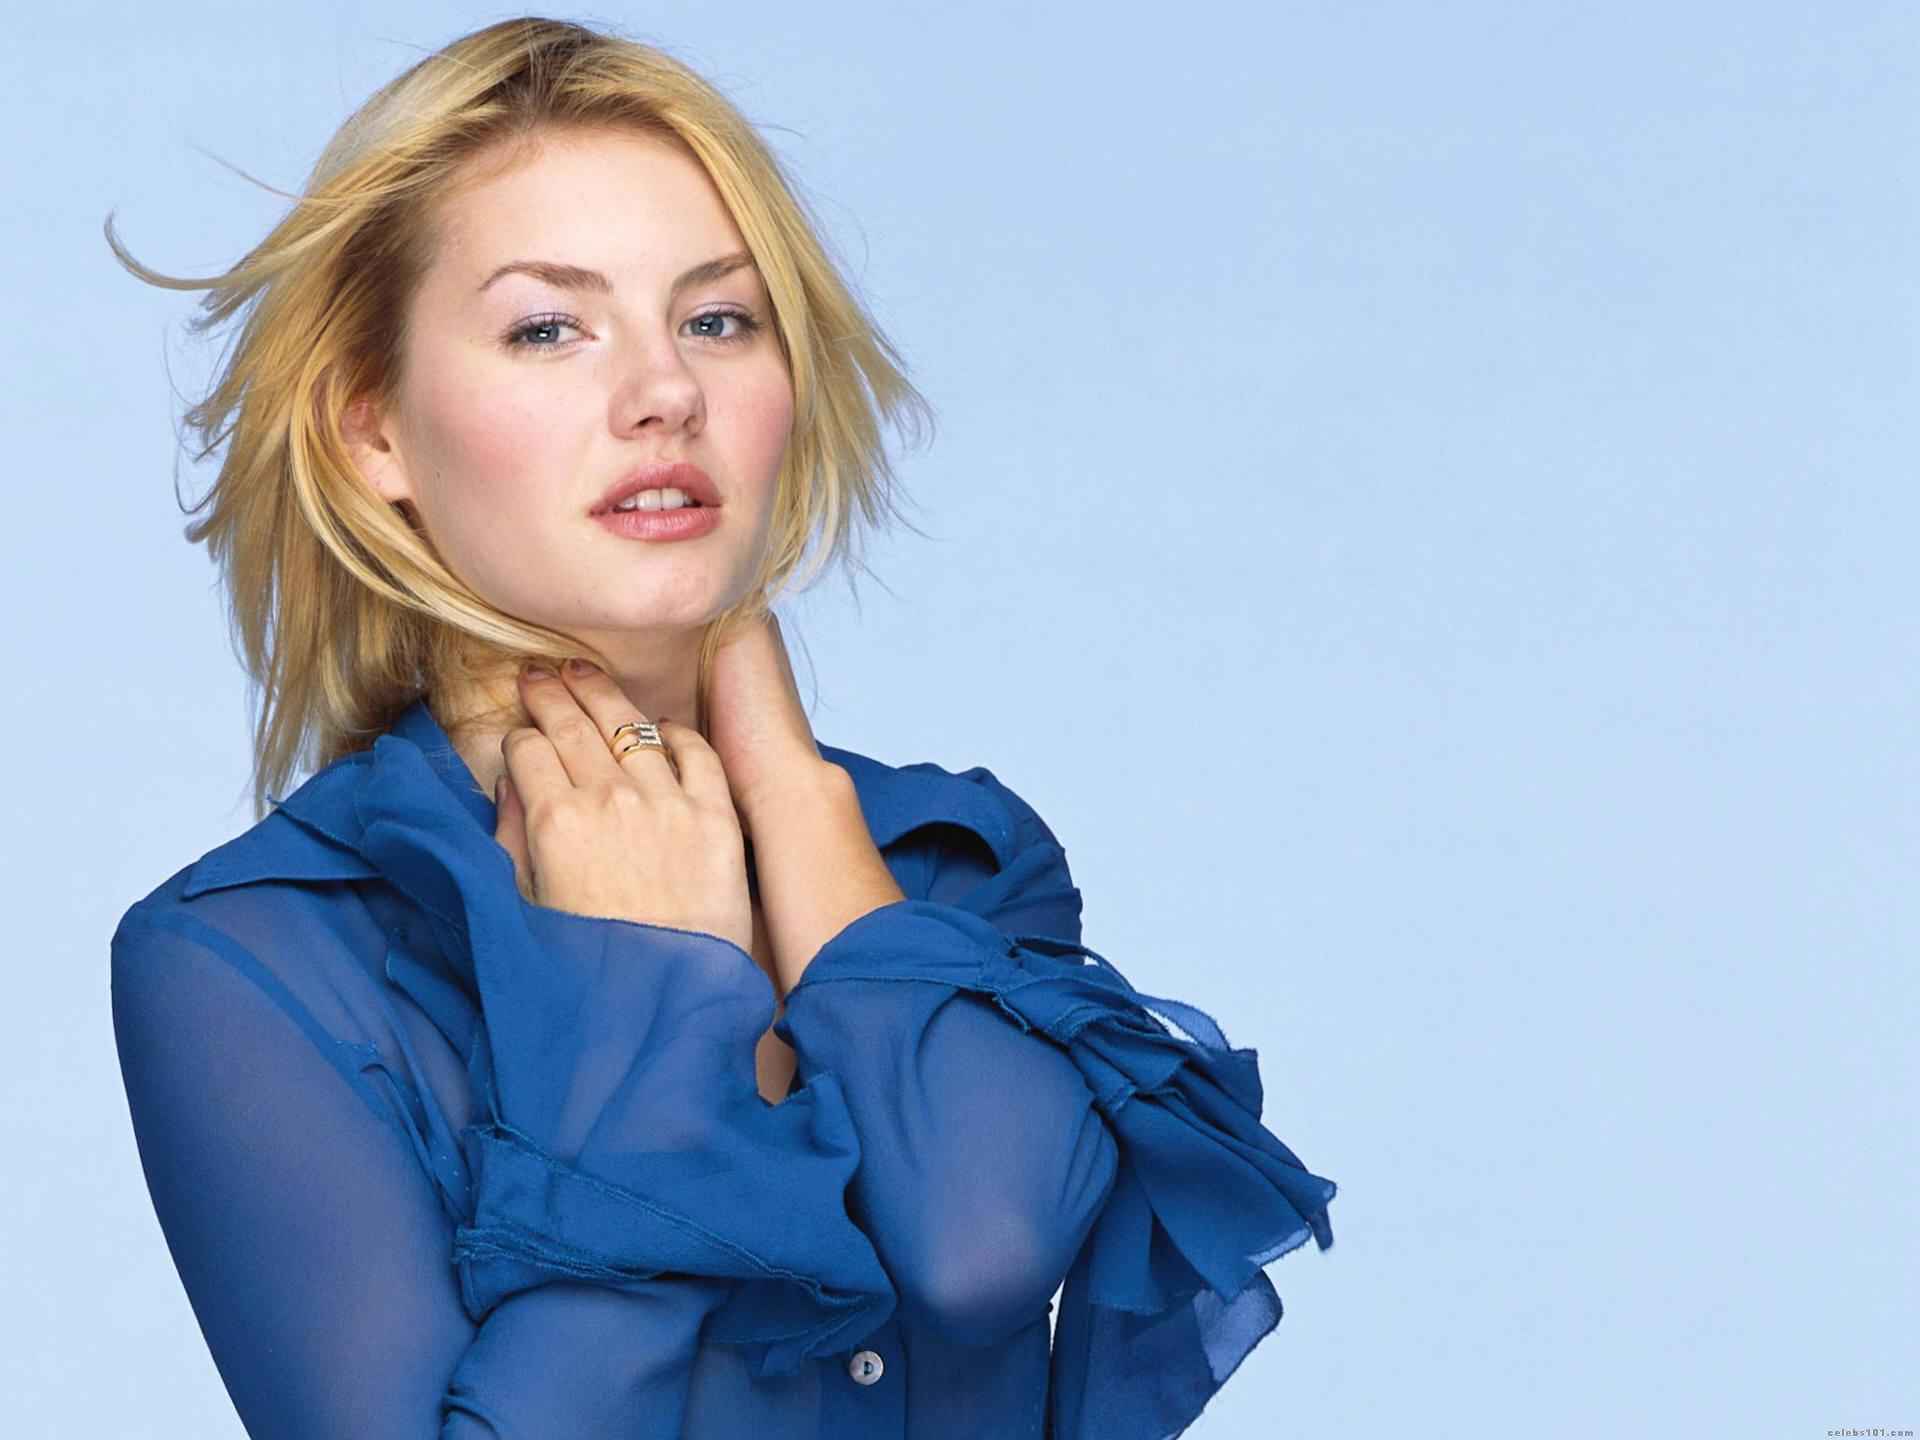 Free Download Elisha Cuthbert High Quality Wallpaper Size